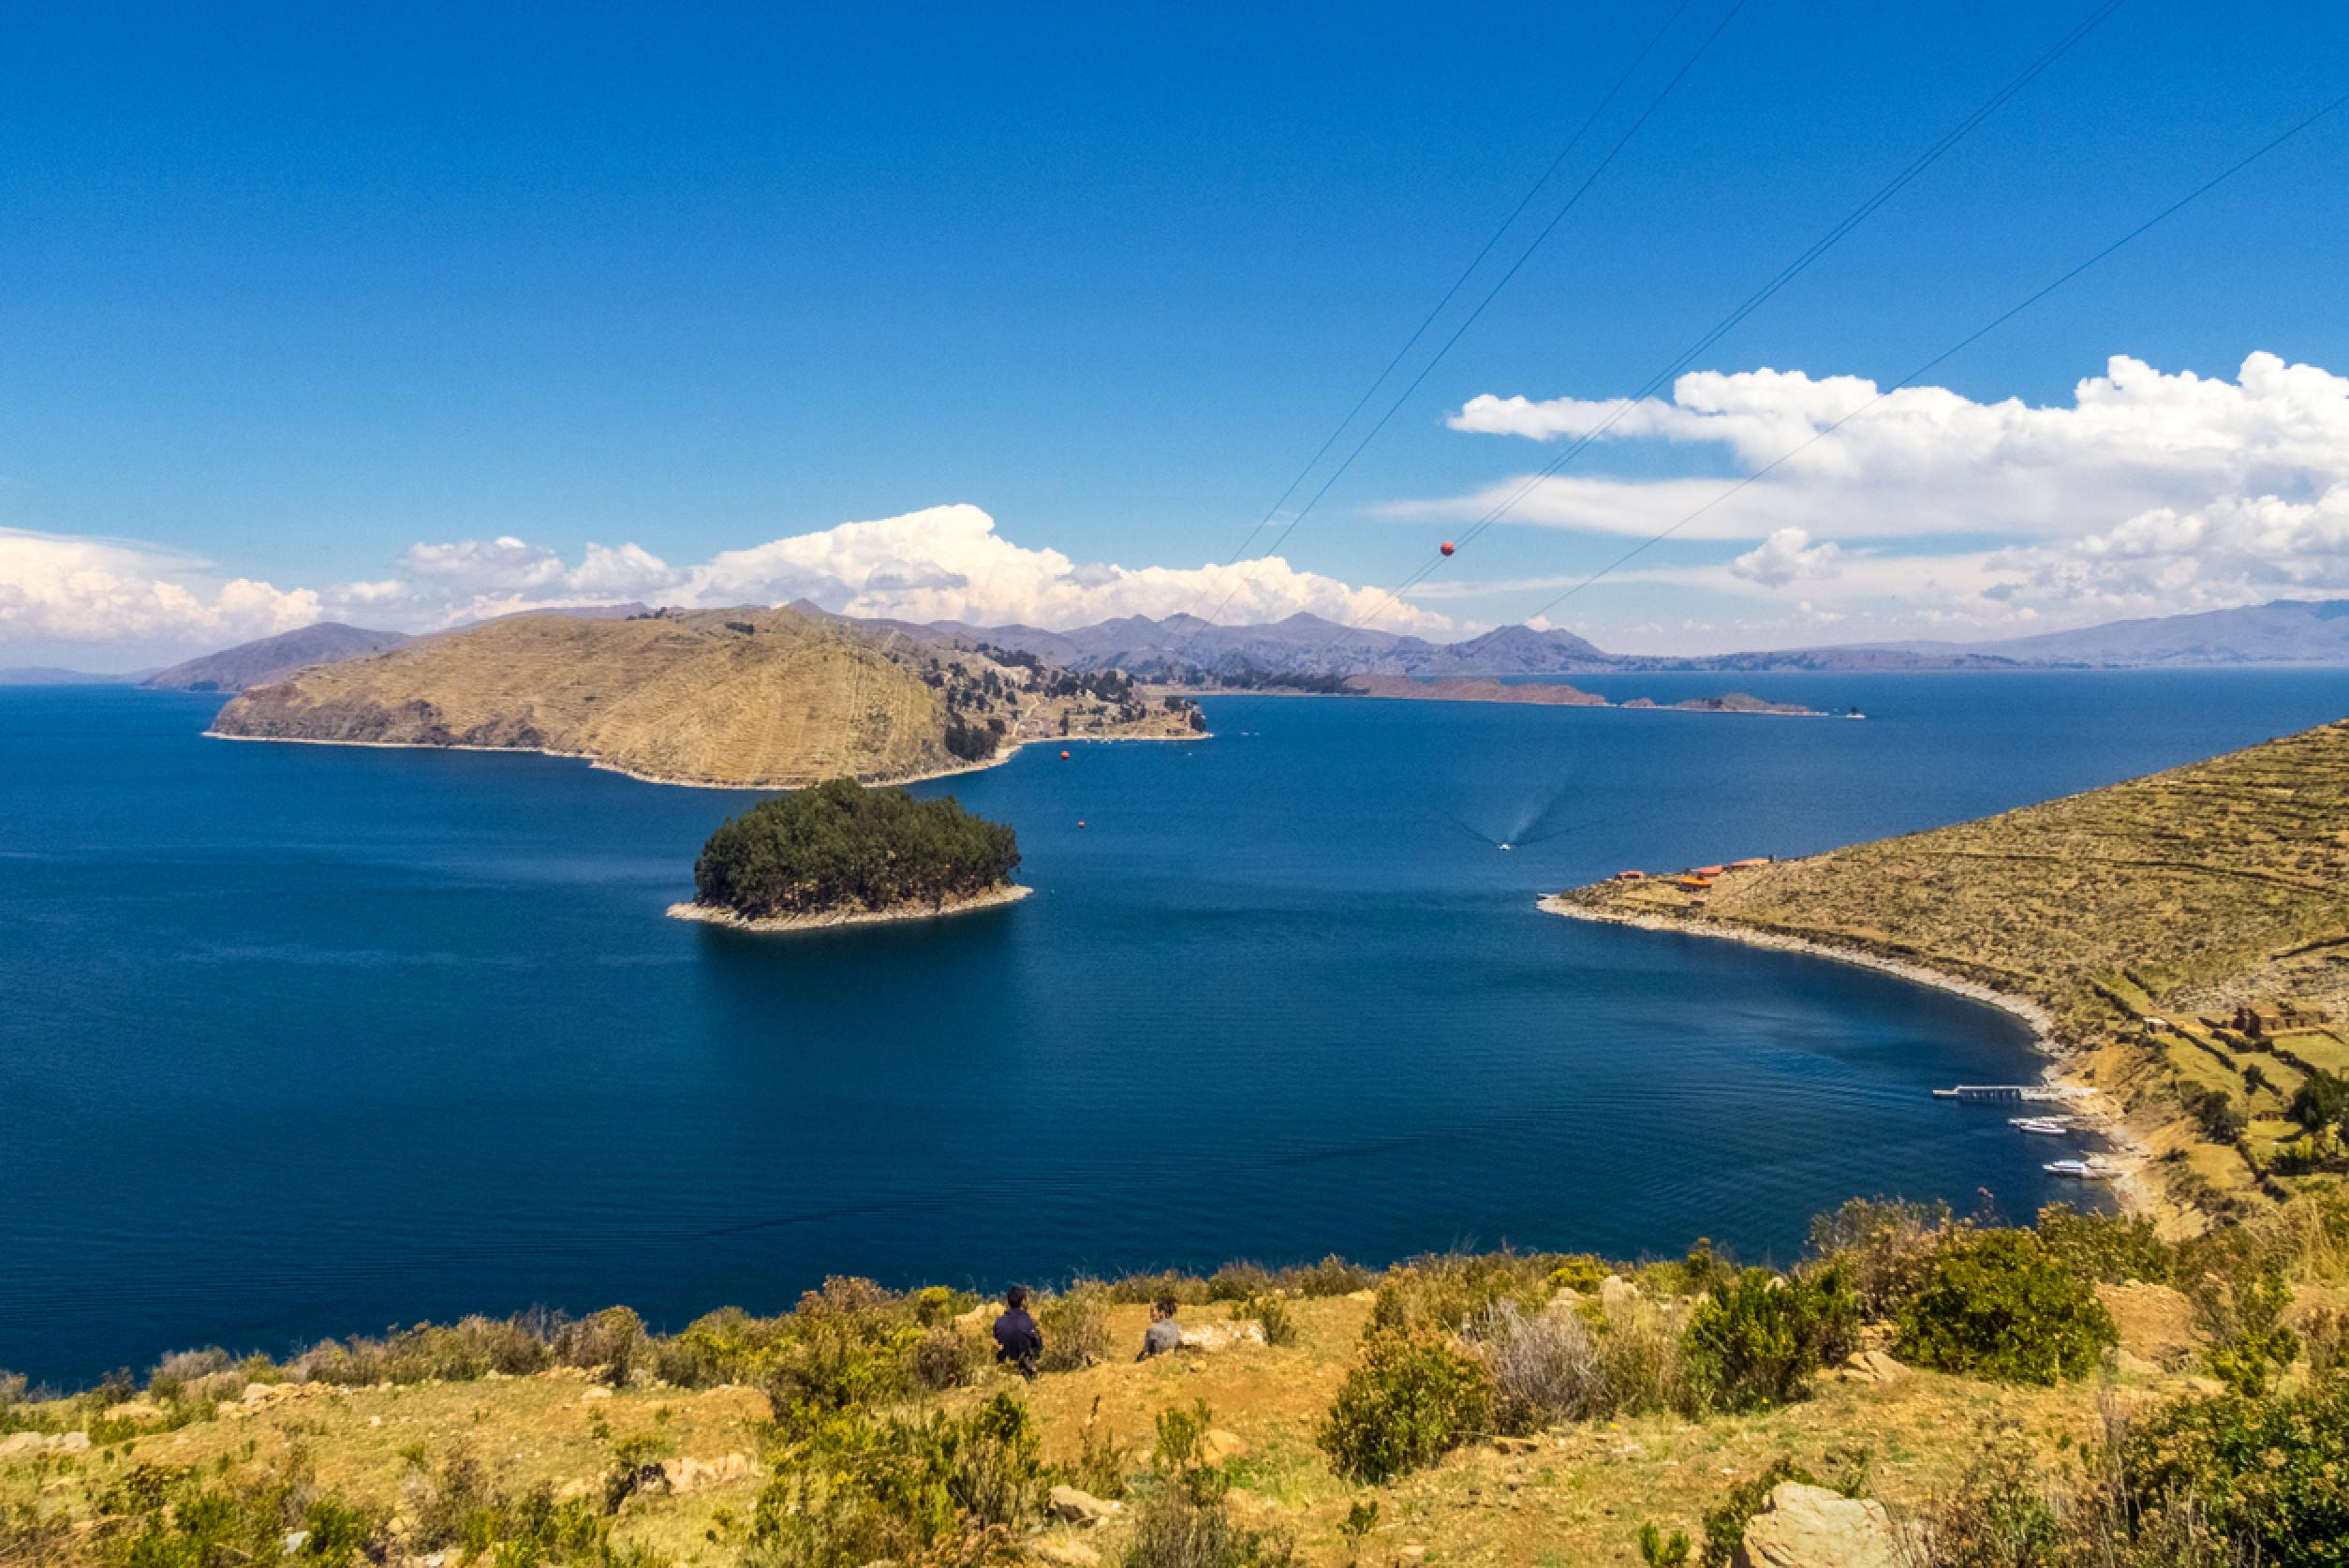 Day Cruise Puno to La Paz by Catamaran and buses